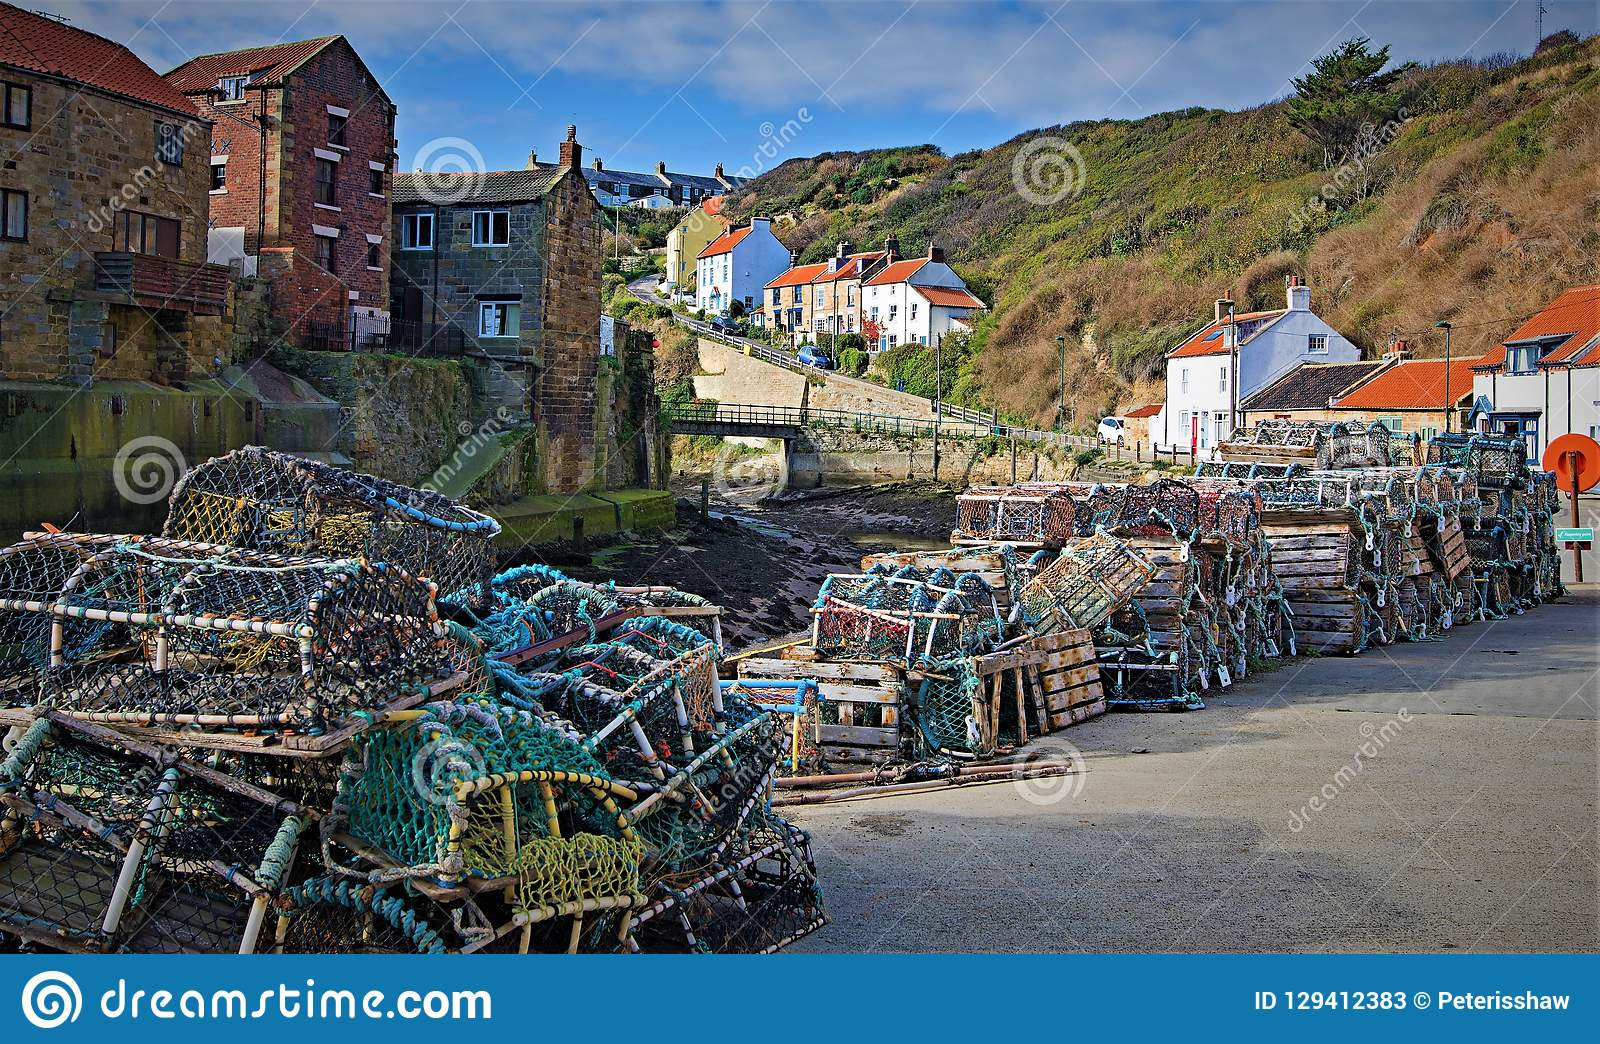 Lobster Pots trail, in Staithes, near Scarborough, in North Yorkshire.